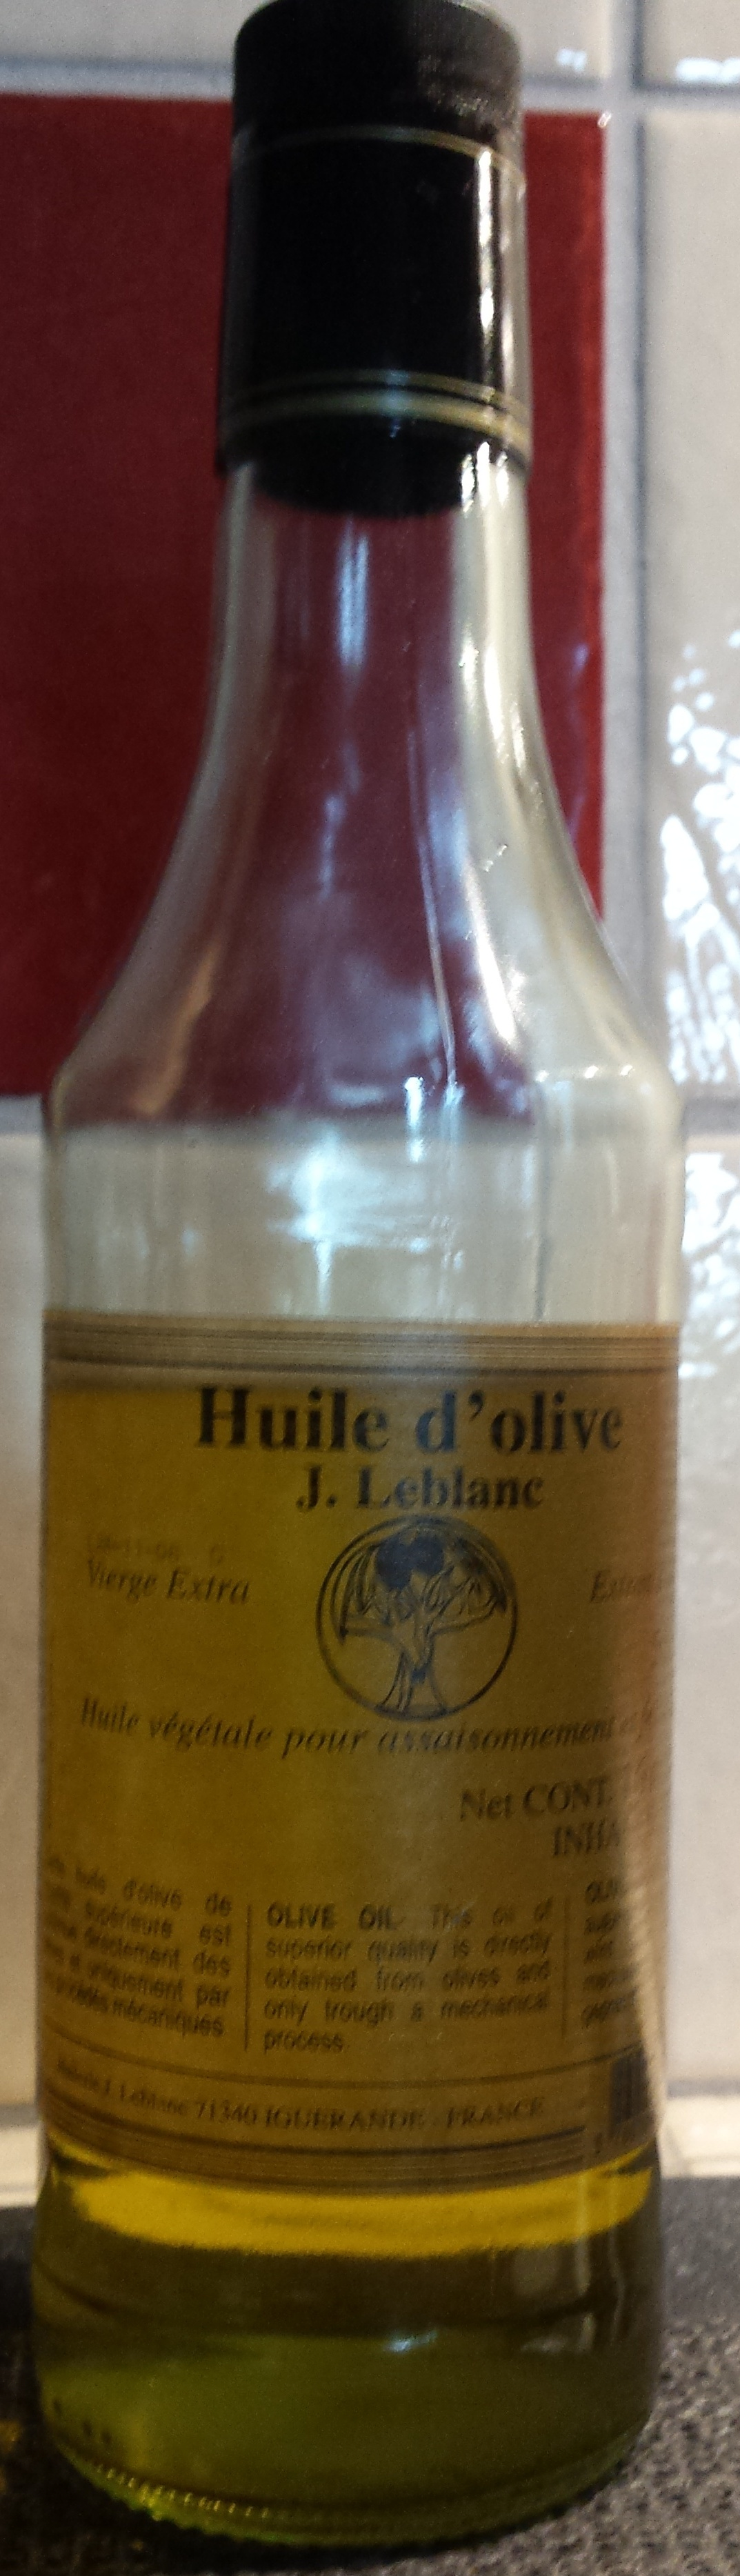 Huile d'olive vierge extra - Prodotto - fr